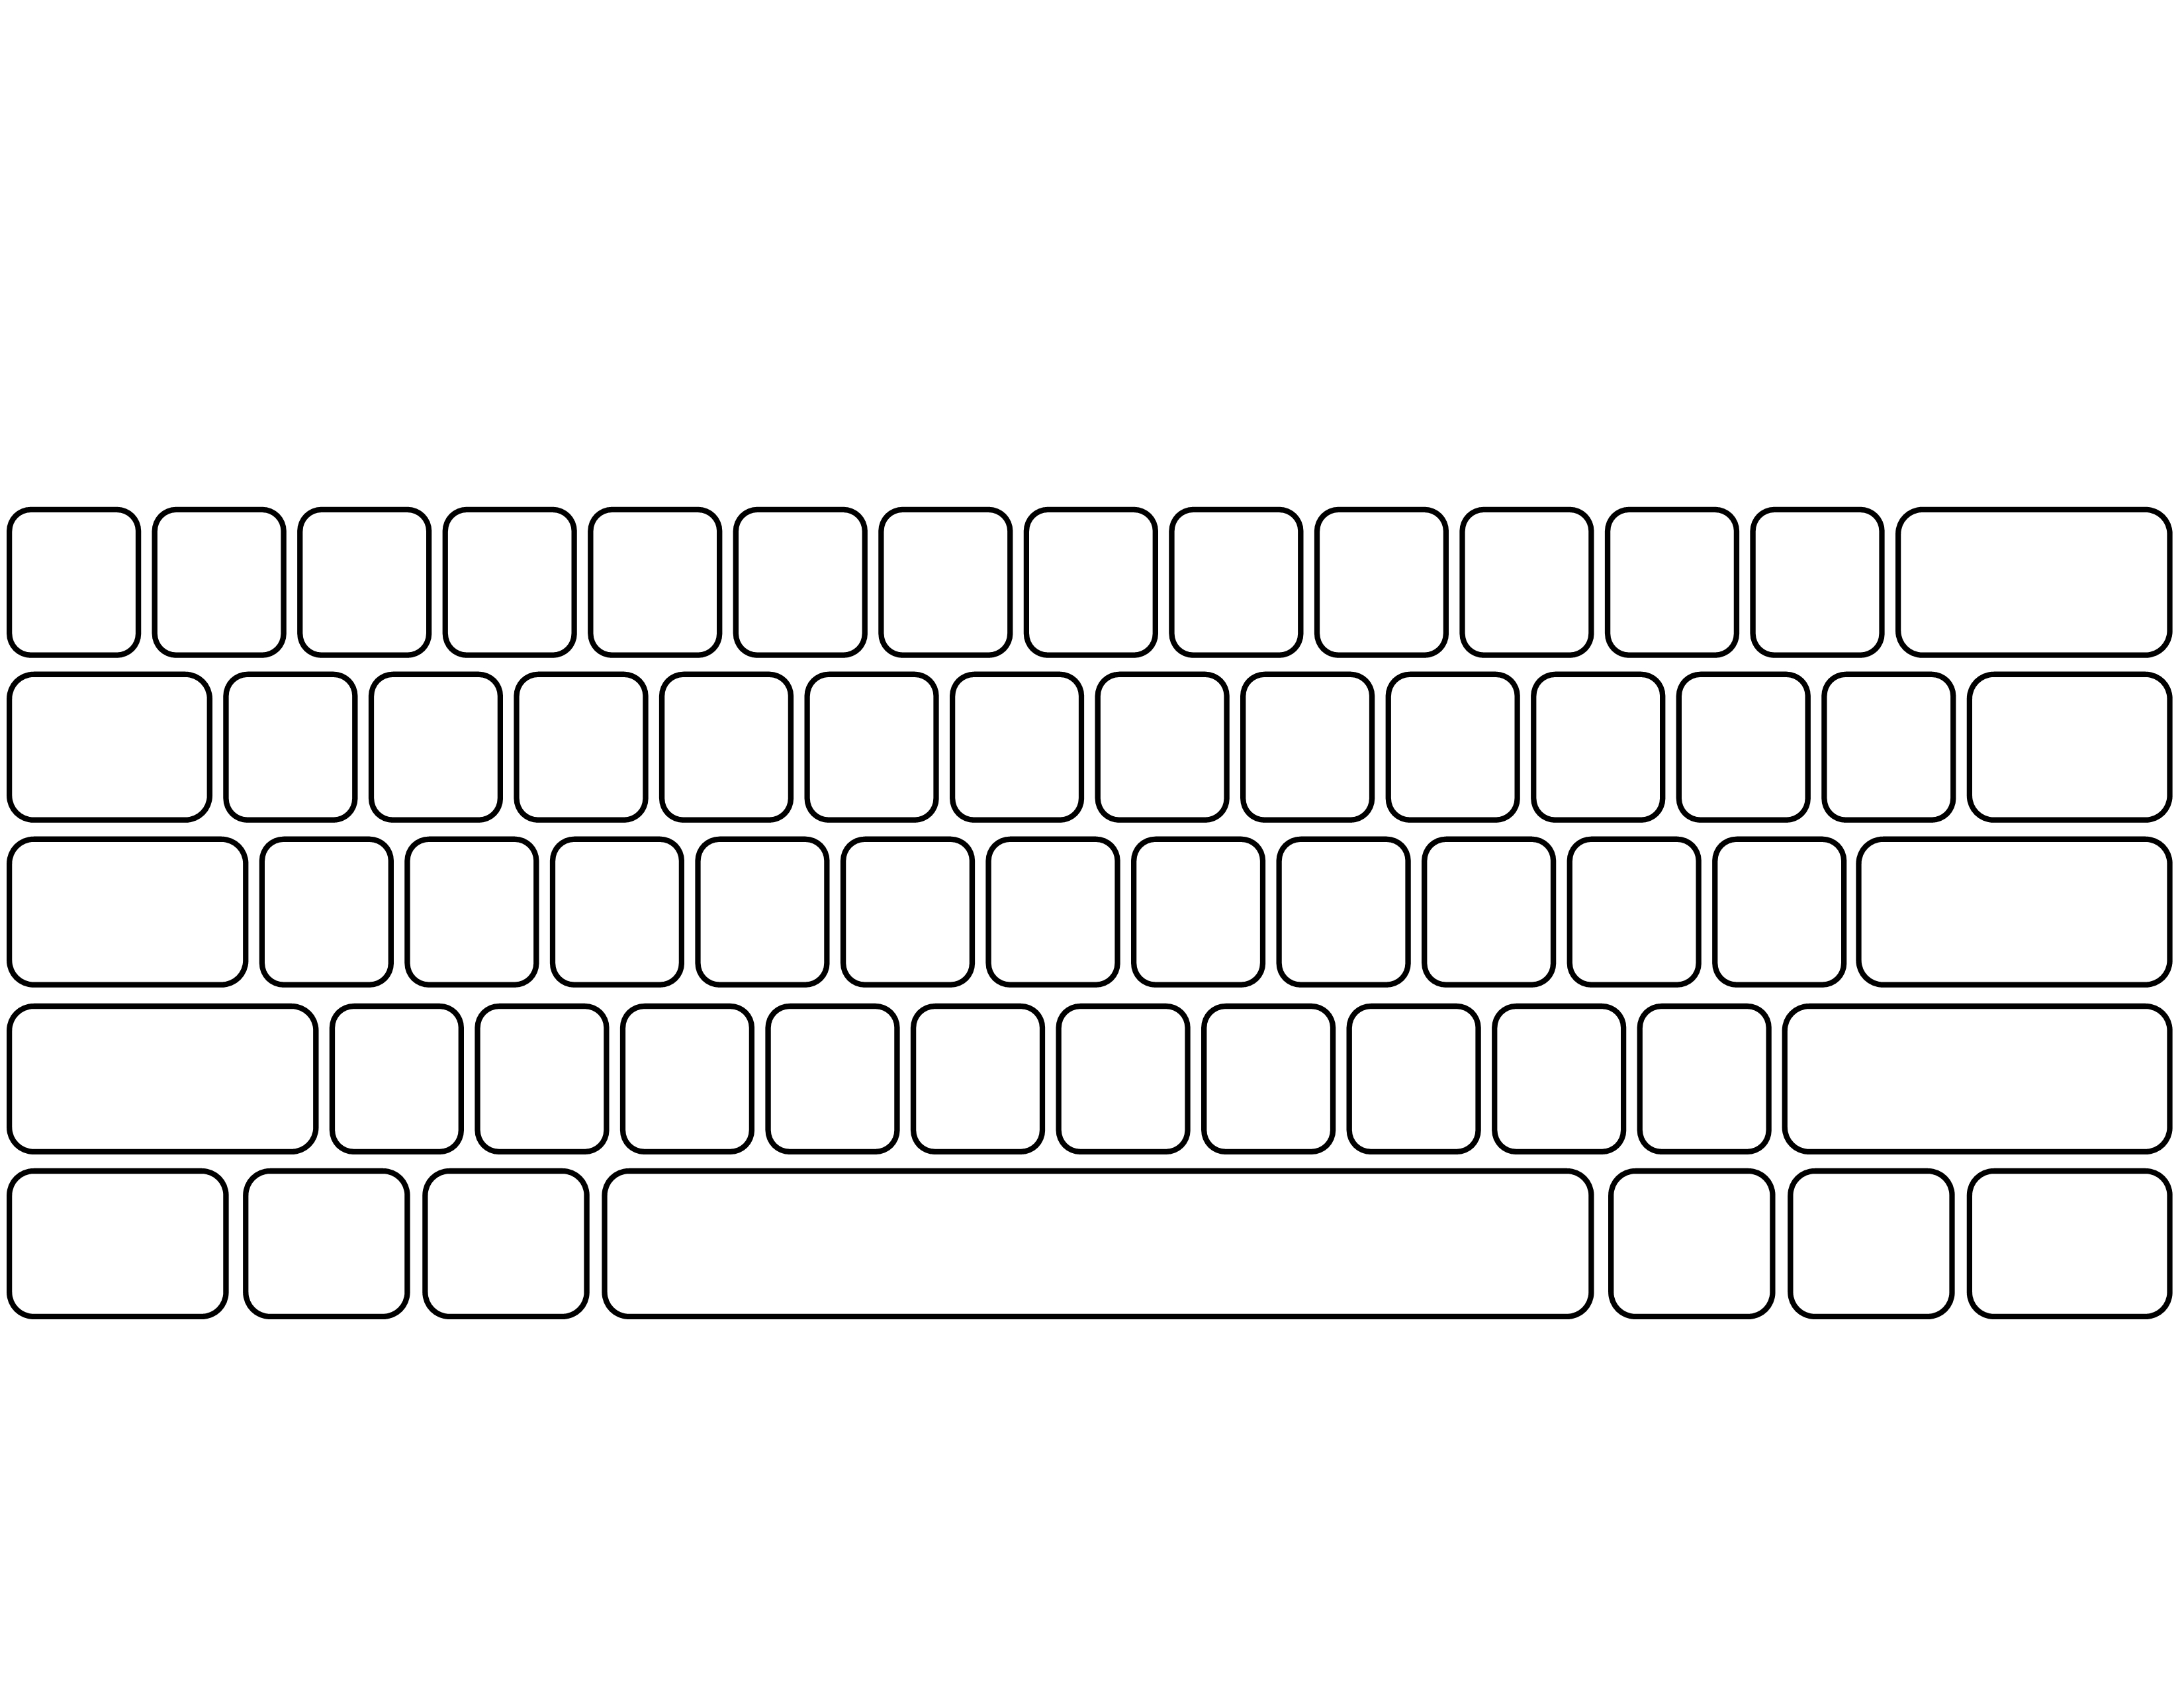 Blank Keyboard Template | Ginger's $1 Tech Shop | Computer Keyboard | Blank Keyboard Worksheet Printable